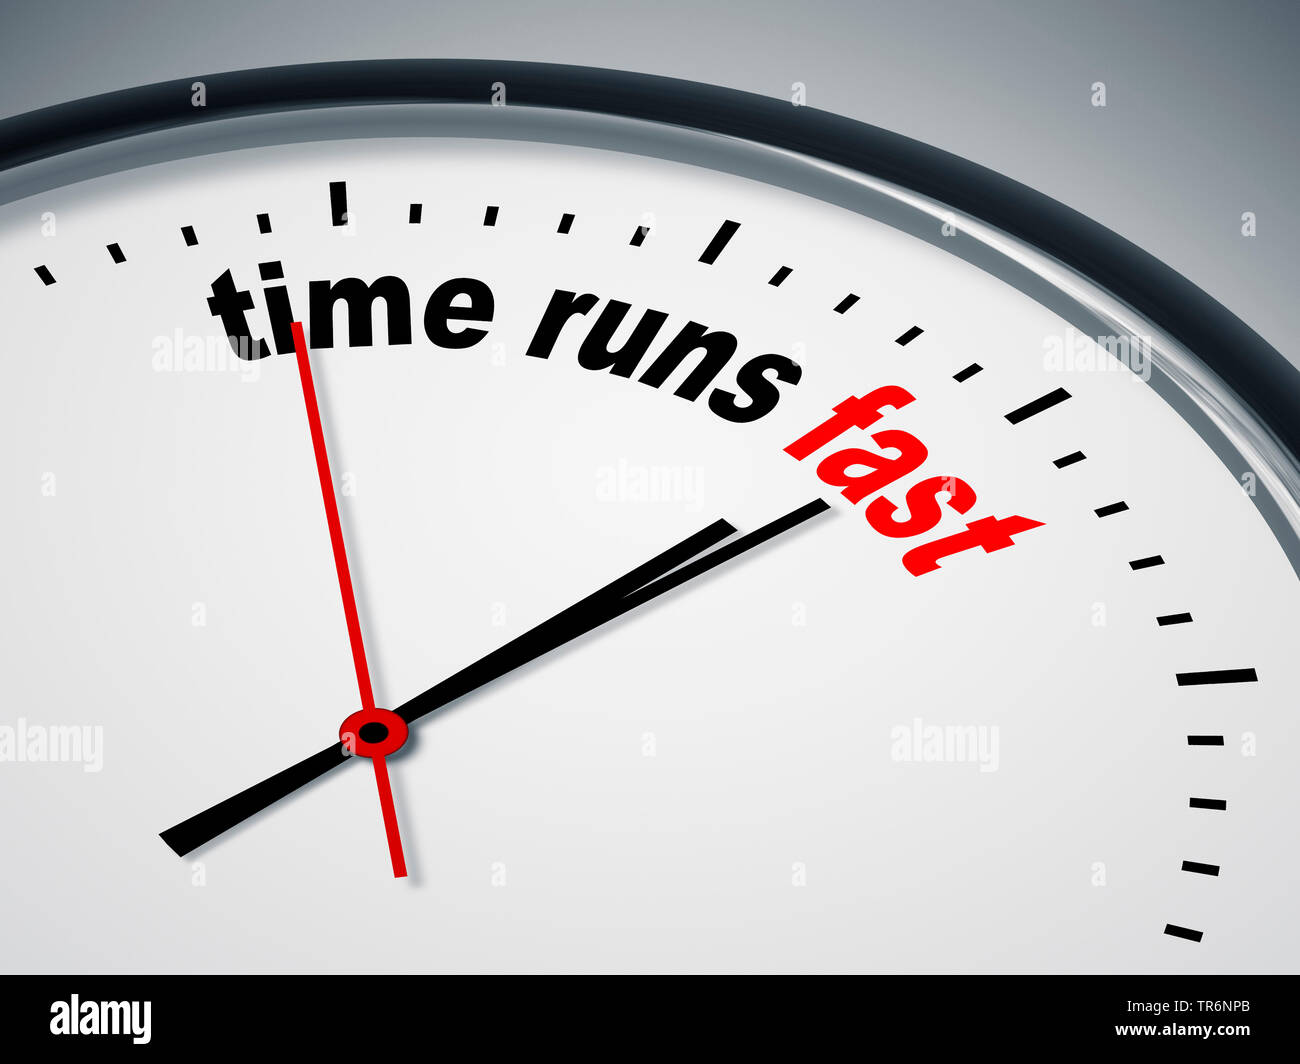 clock face with inscription time runs fast - Stock Image